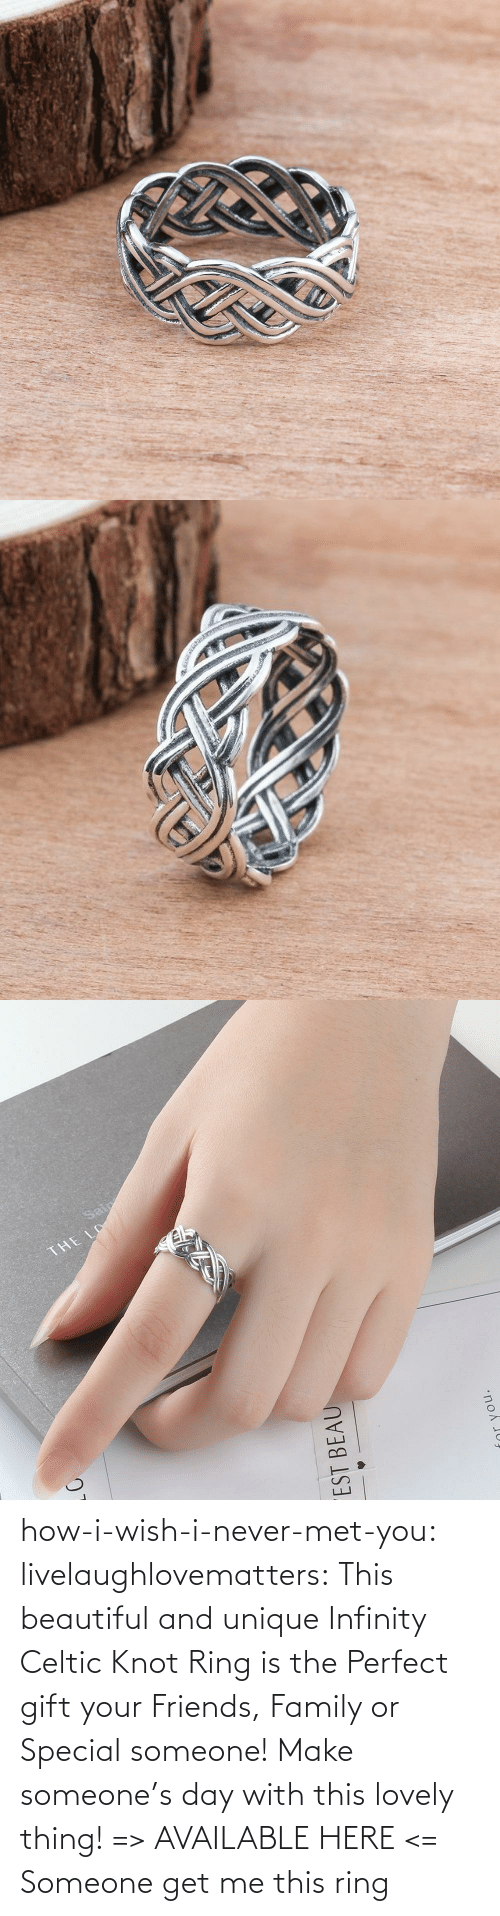 Beautiful, Celtic, and Family: how-i-wish-i-never-met-you: livelaughlovematters:  This beautiful and unique Infinity Celtic Knot Ring is the Perfect gift your Friends, Family or Special someone! Make someone's day with this lovely thing! => AVAILABLE HERE <=    Someone get me this ring